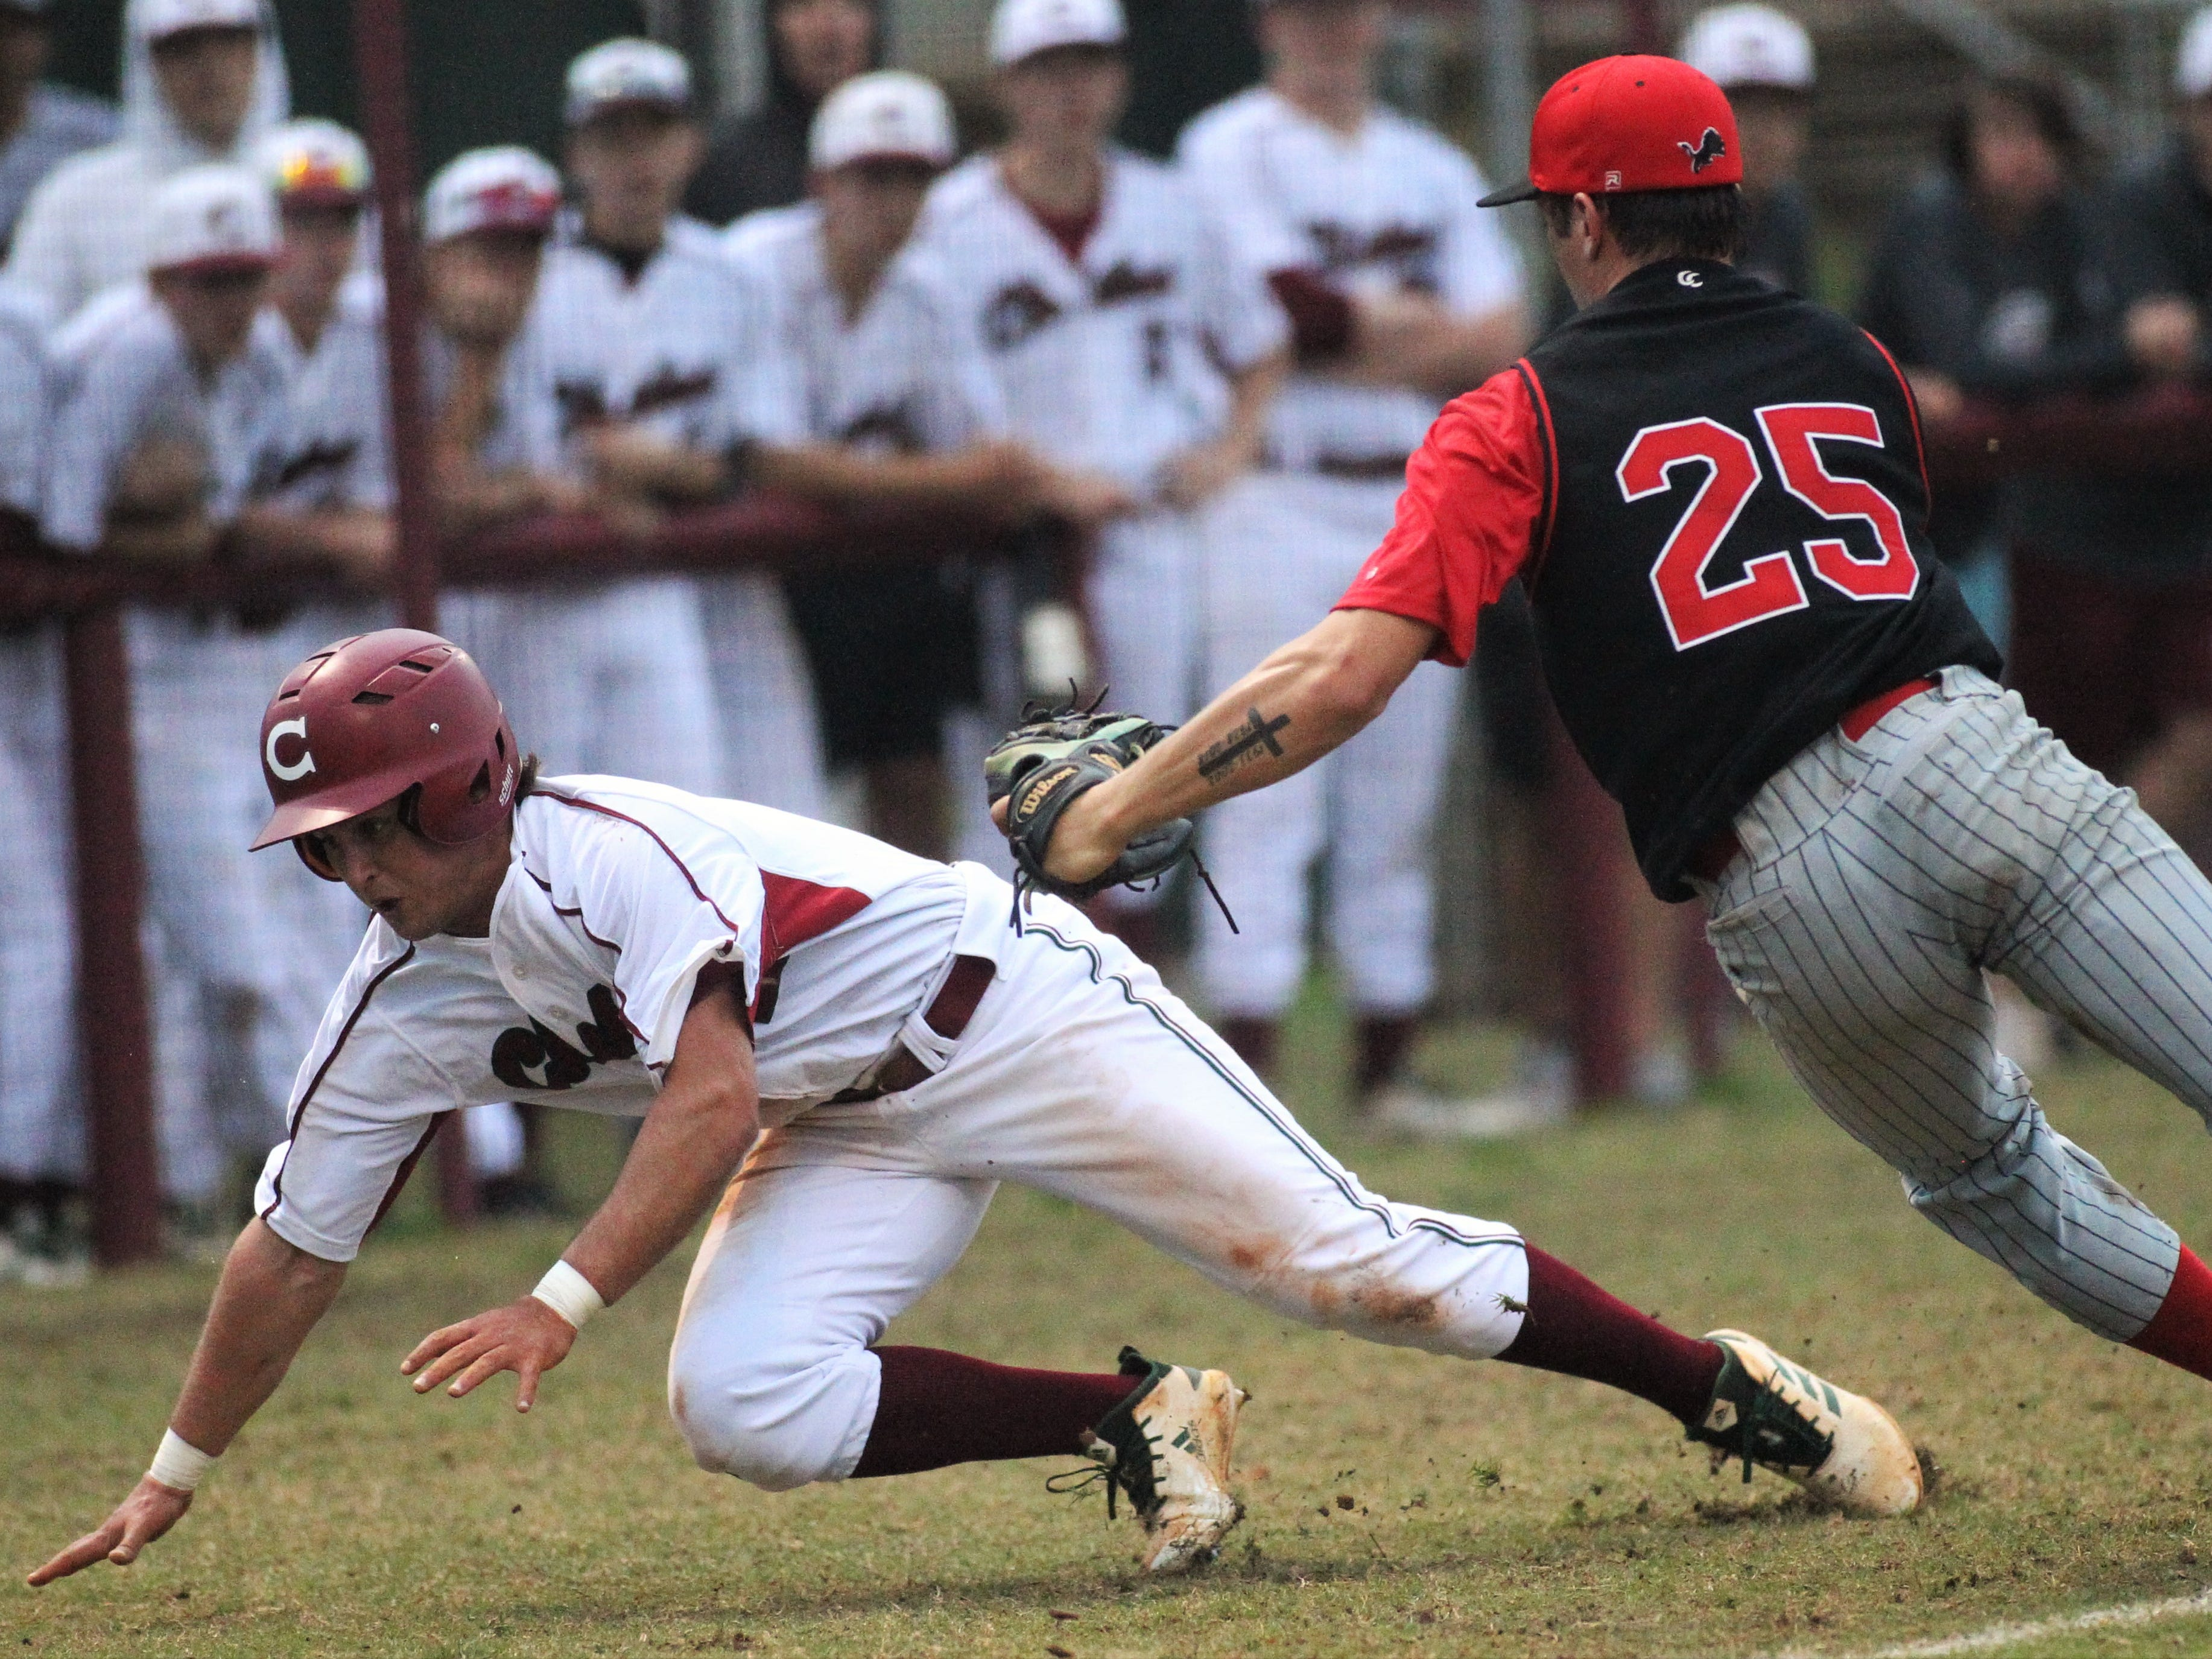 Leon pitcher Tyler Borges tags out Chiles' Cal McCallum during a rundown as Chiles won an 11-6 home game against Leon on Friday, April 5, 2019, to force a season split. The Lions won 3-0 earlier in the week.